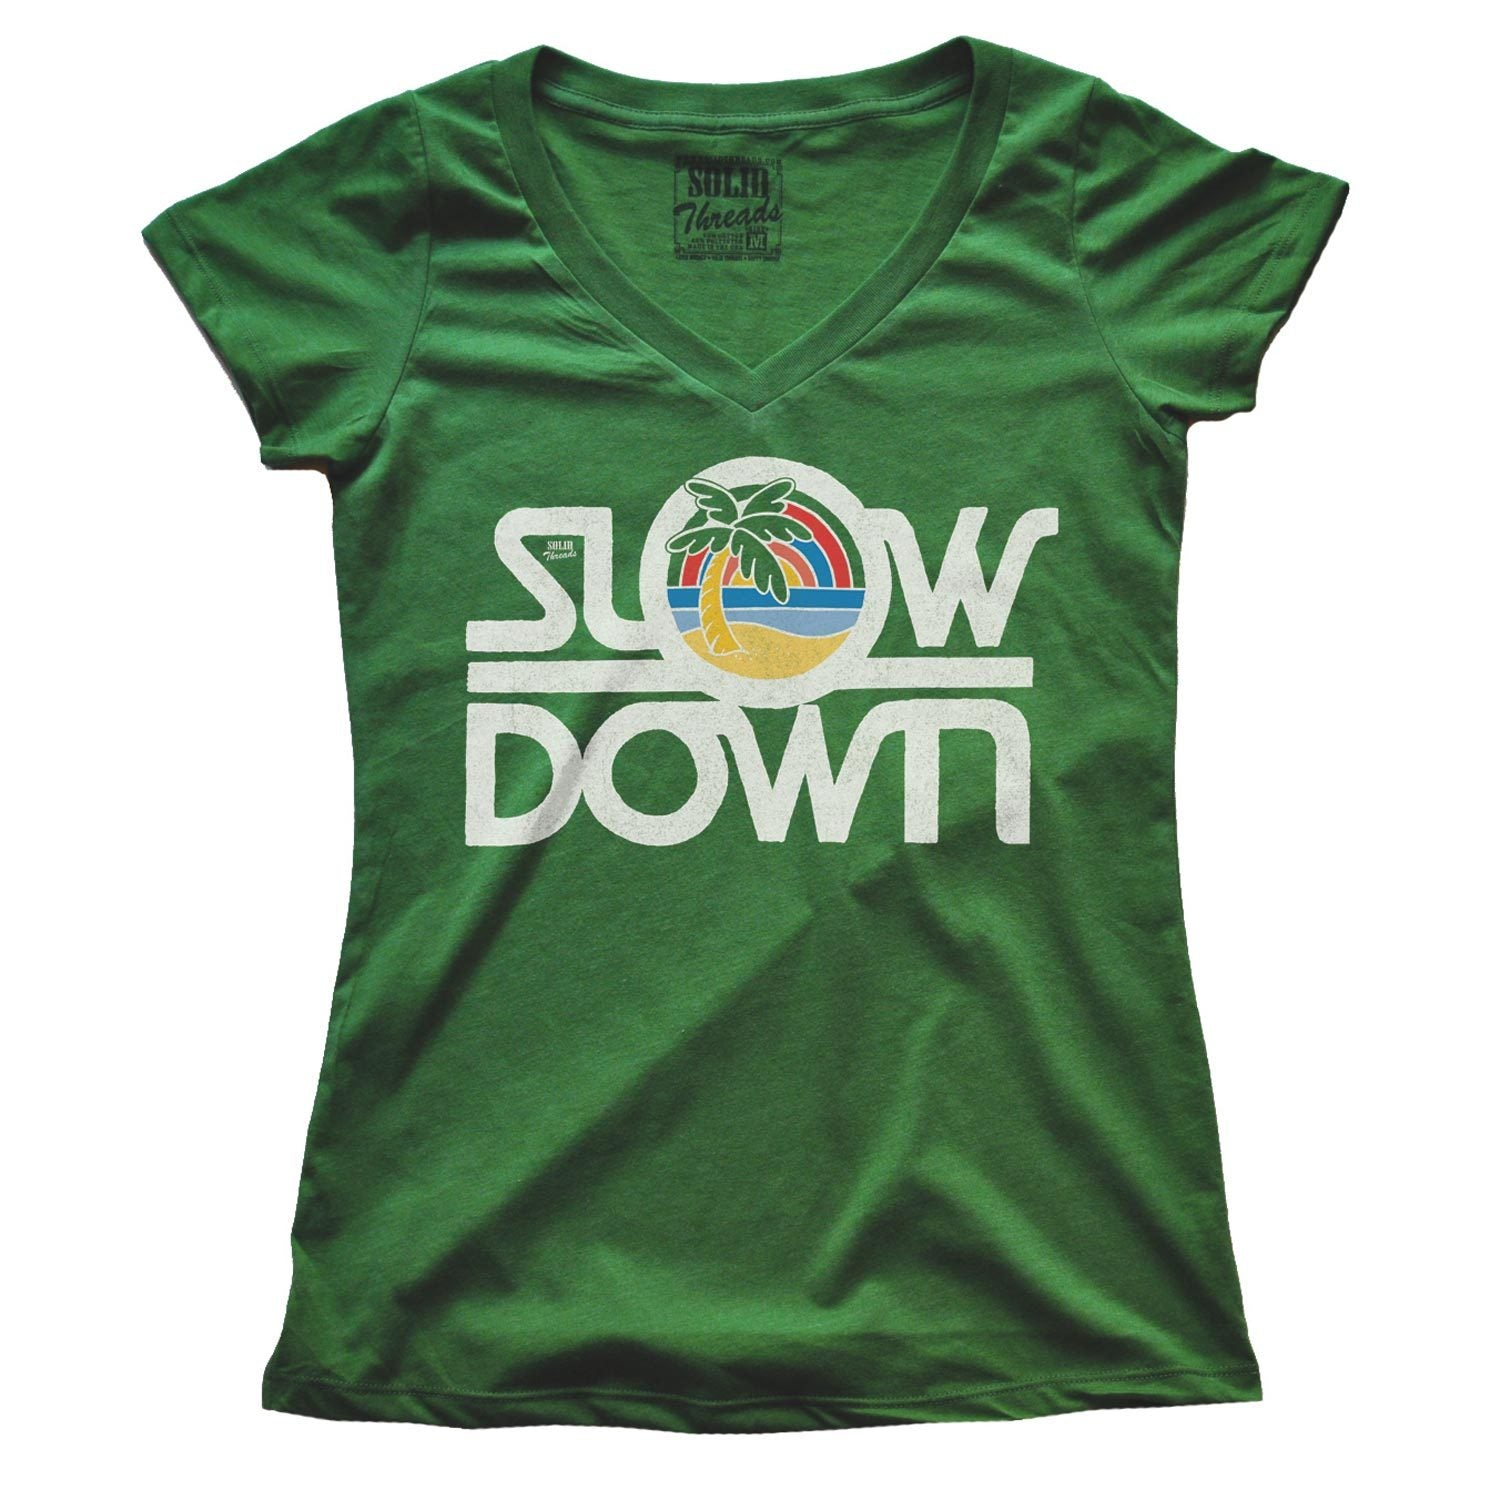 Women's Slow Down Vintage V-neck T-shirt | SOLID THREADS